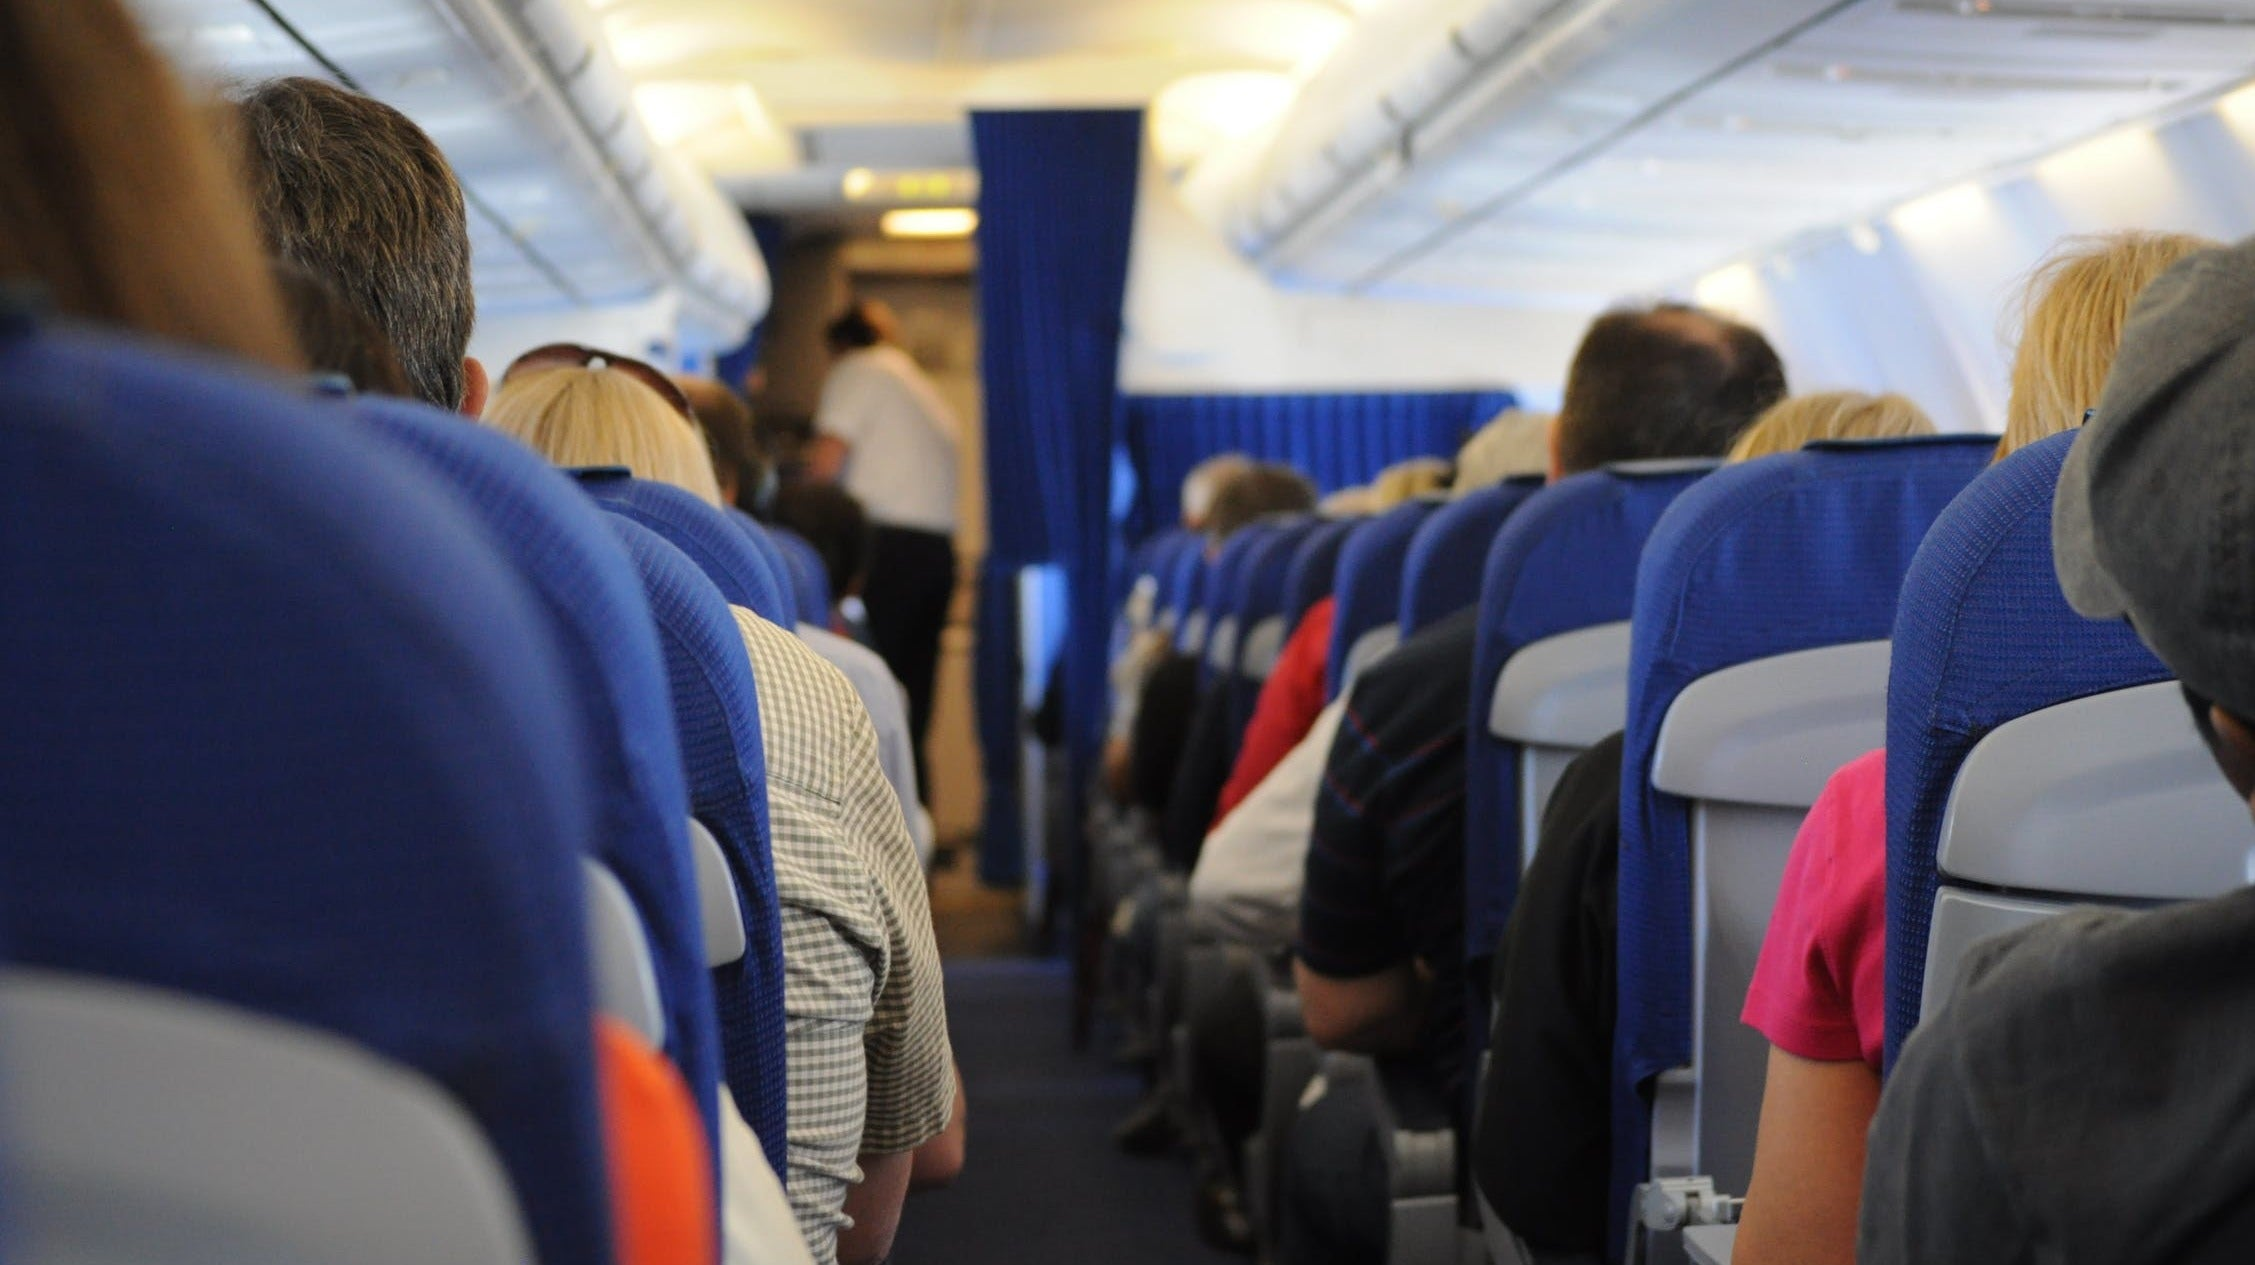 How To Find Out The Age Of Your Plane Before A Flight